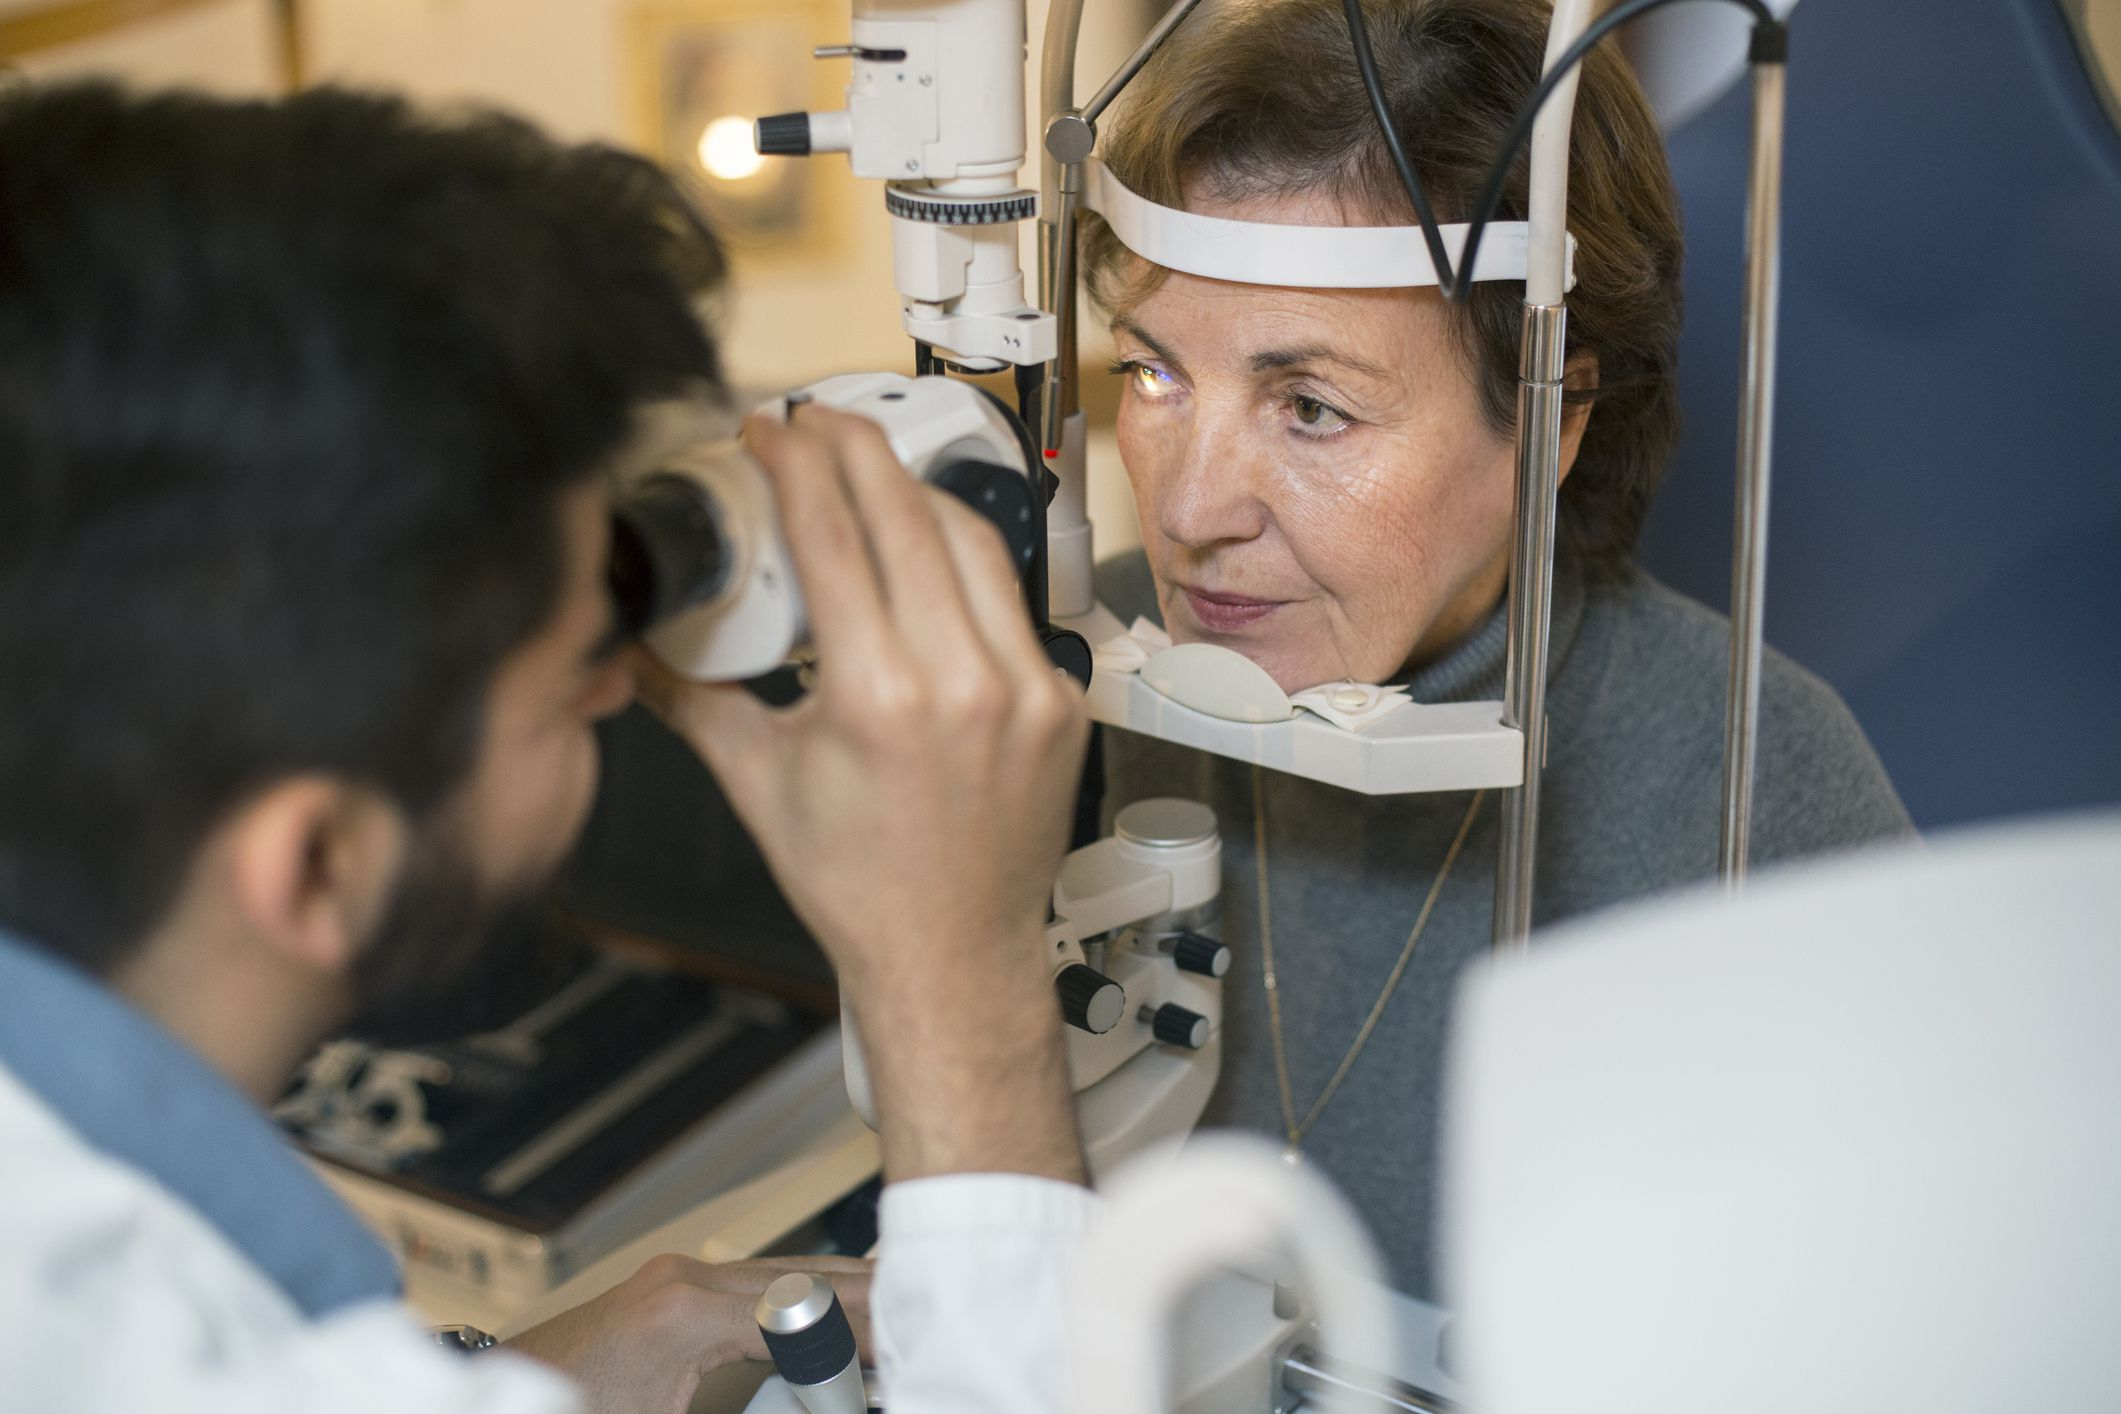 What Should I Know About Glaucoma?